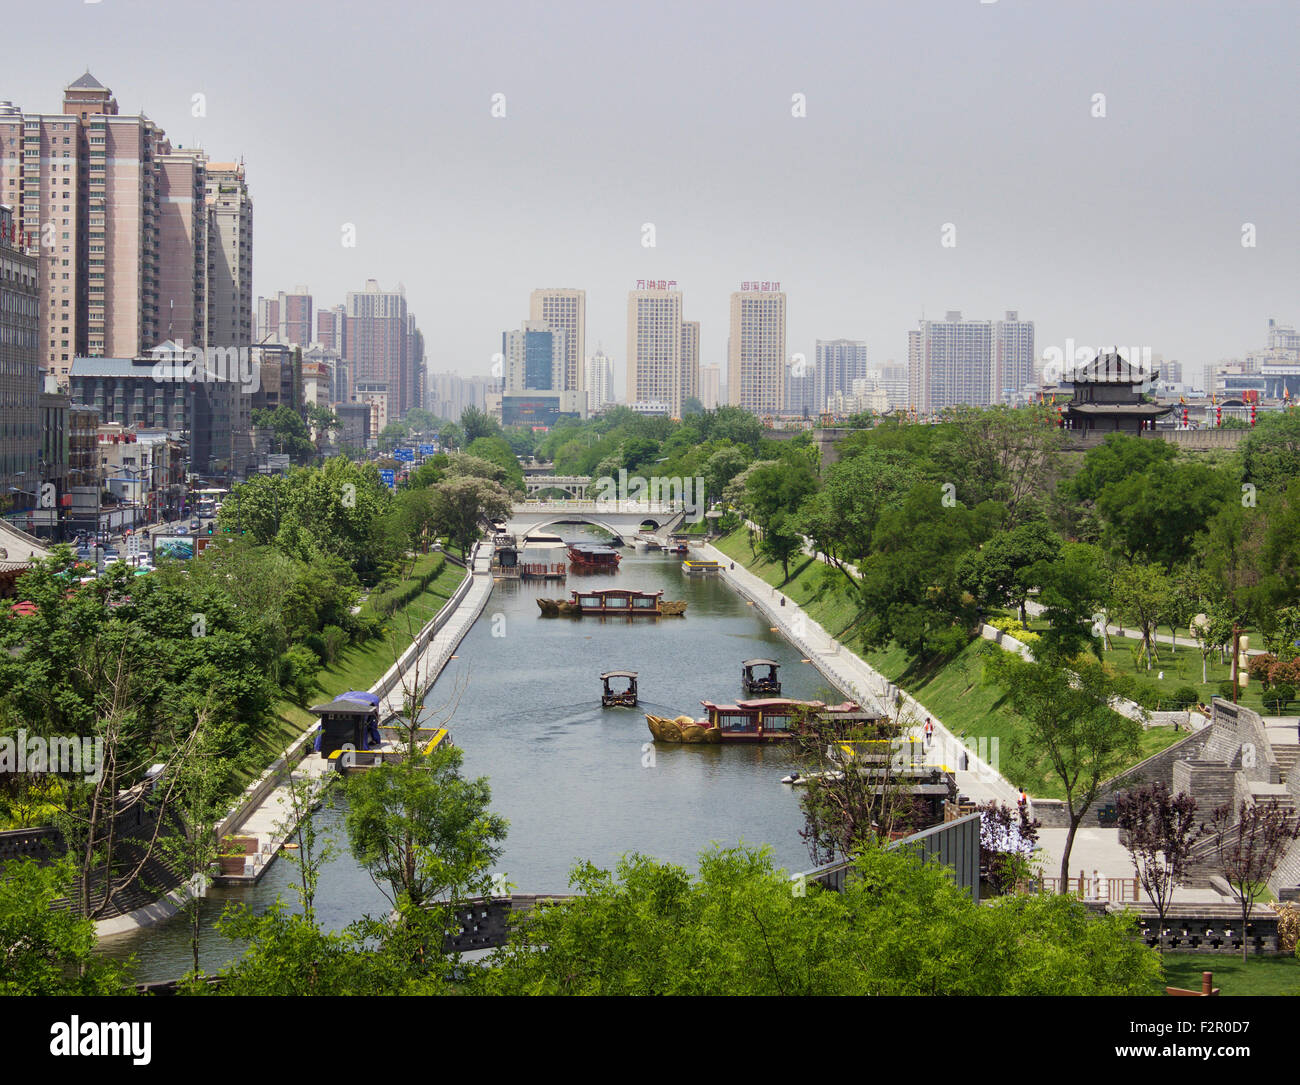 Xian, China, water way with backdrop of the city. - Stock Image